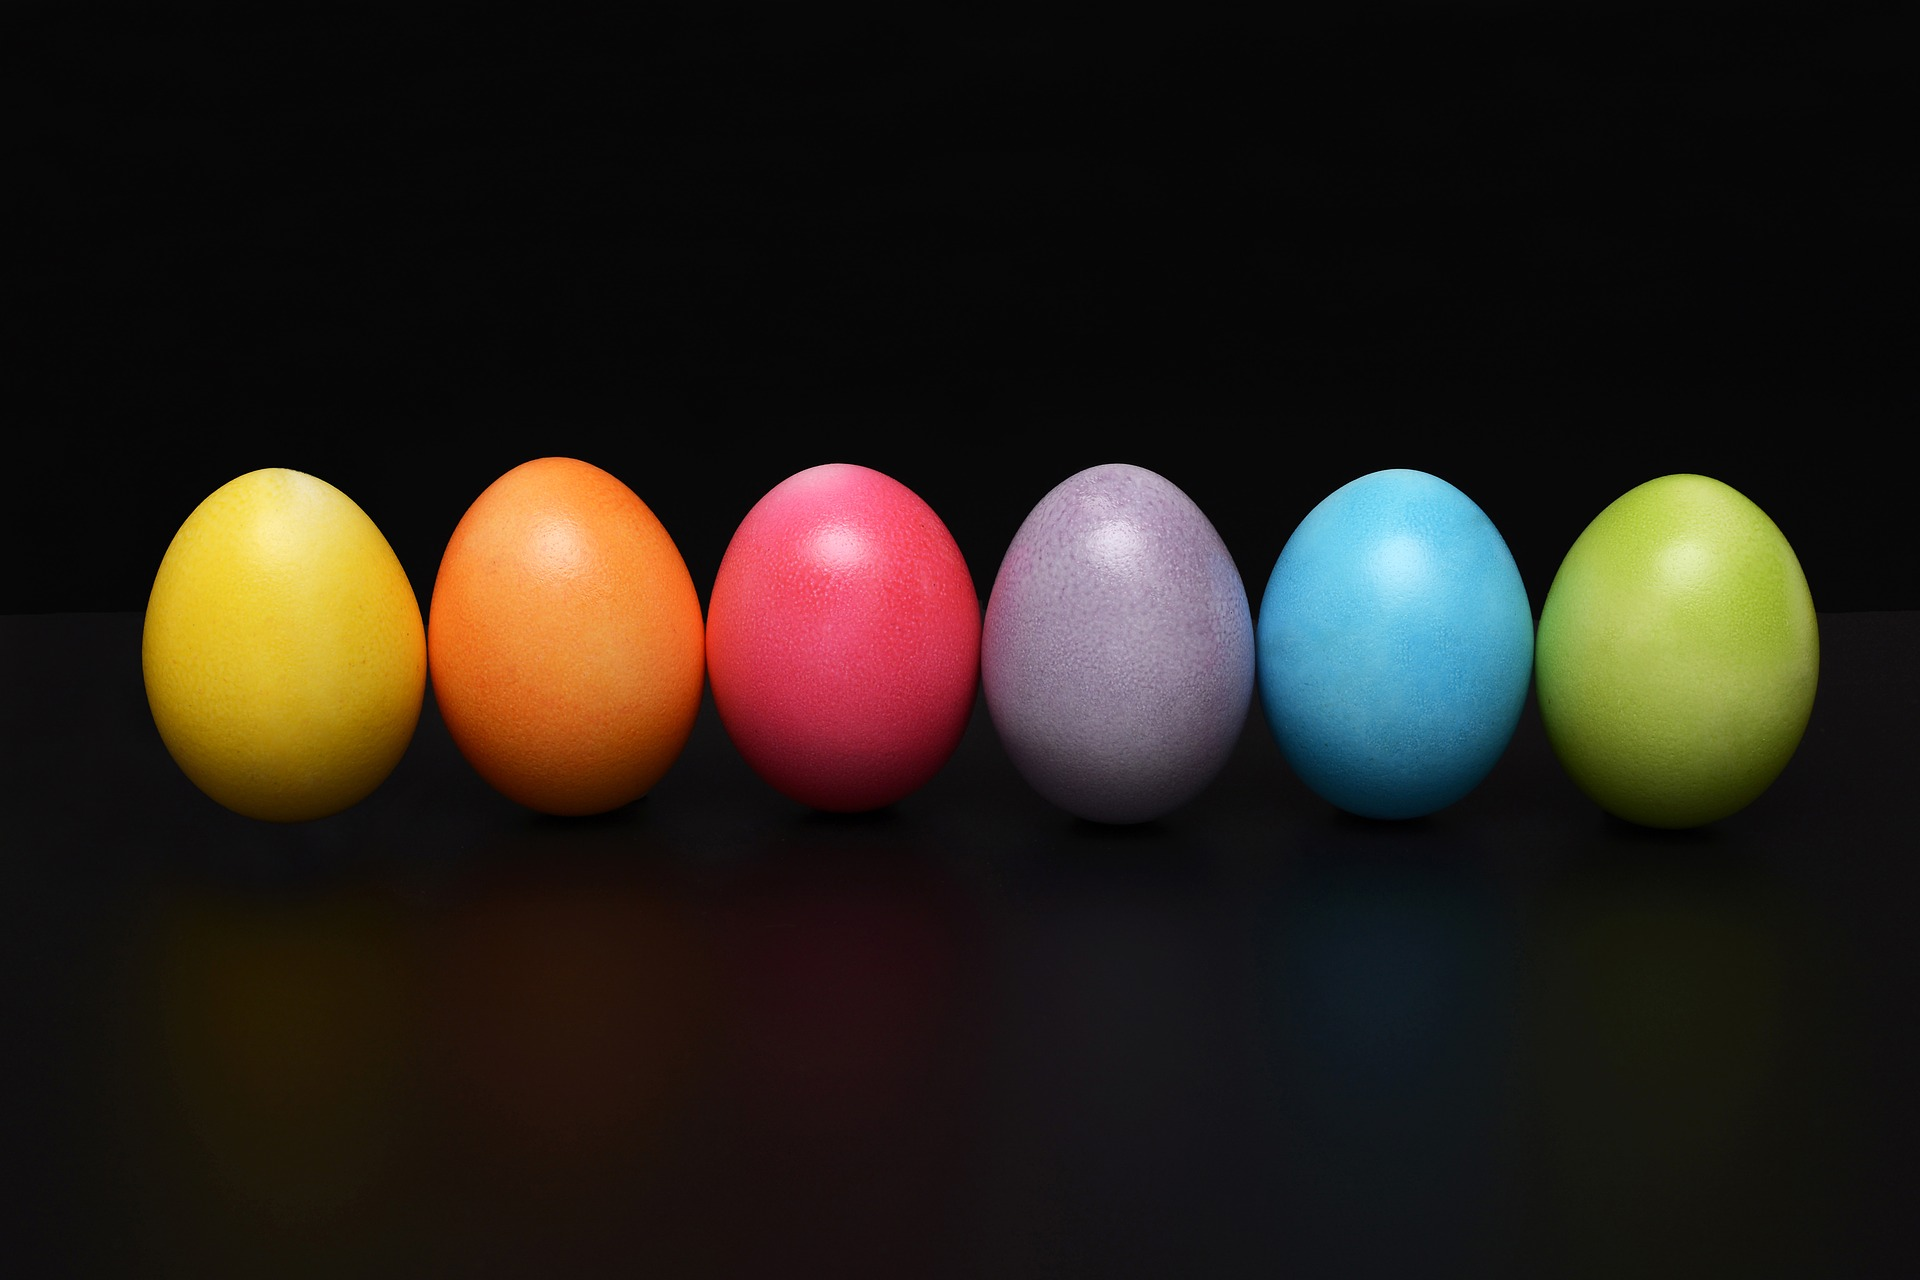 Our Riddle is about colors. The picture is of 6 different colored easter eggs.